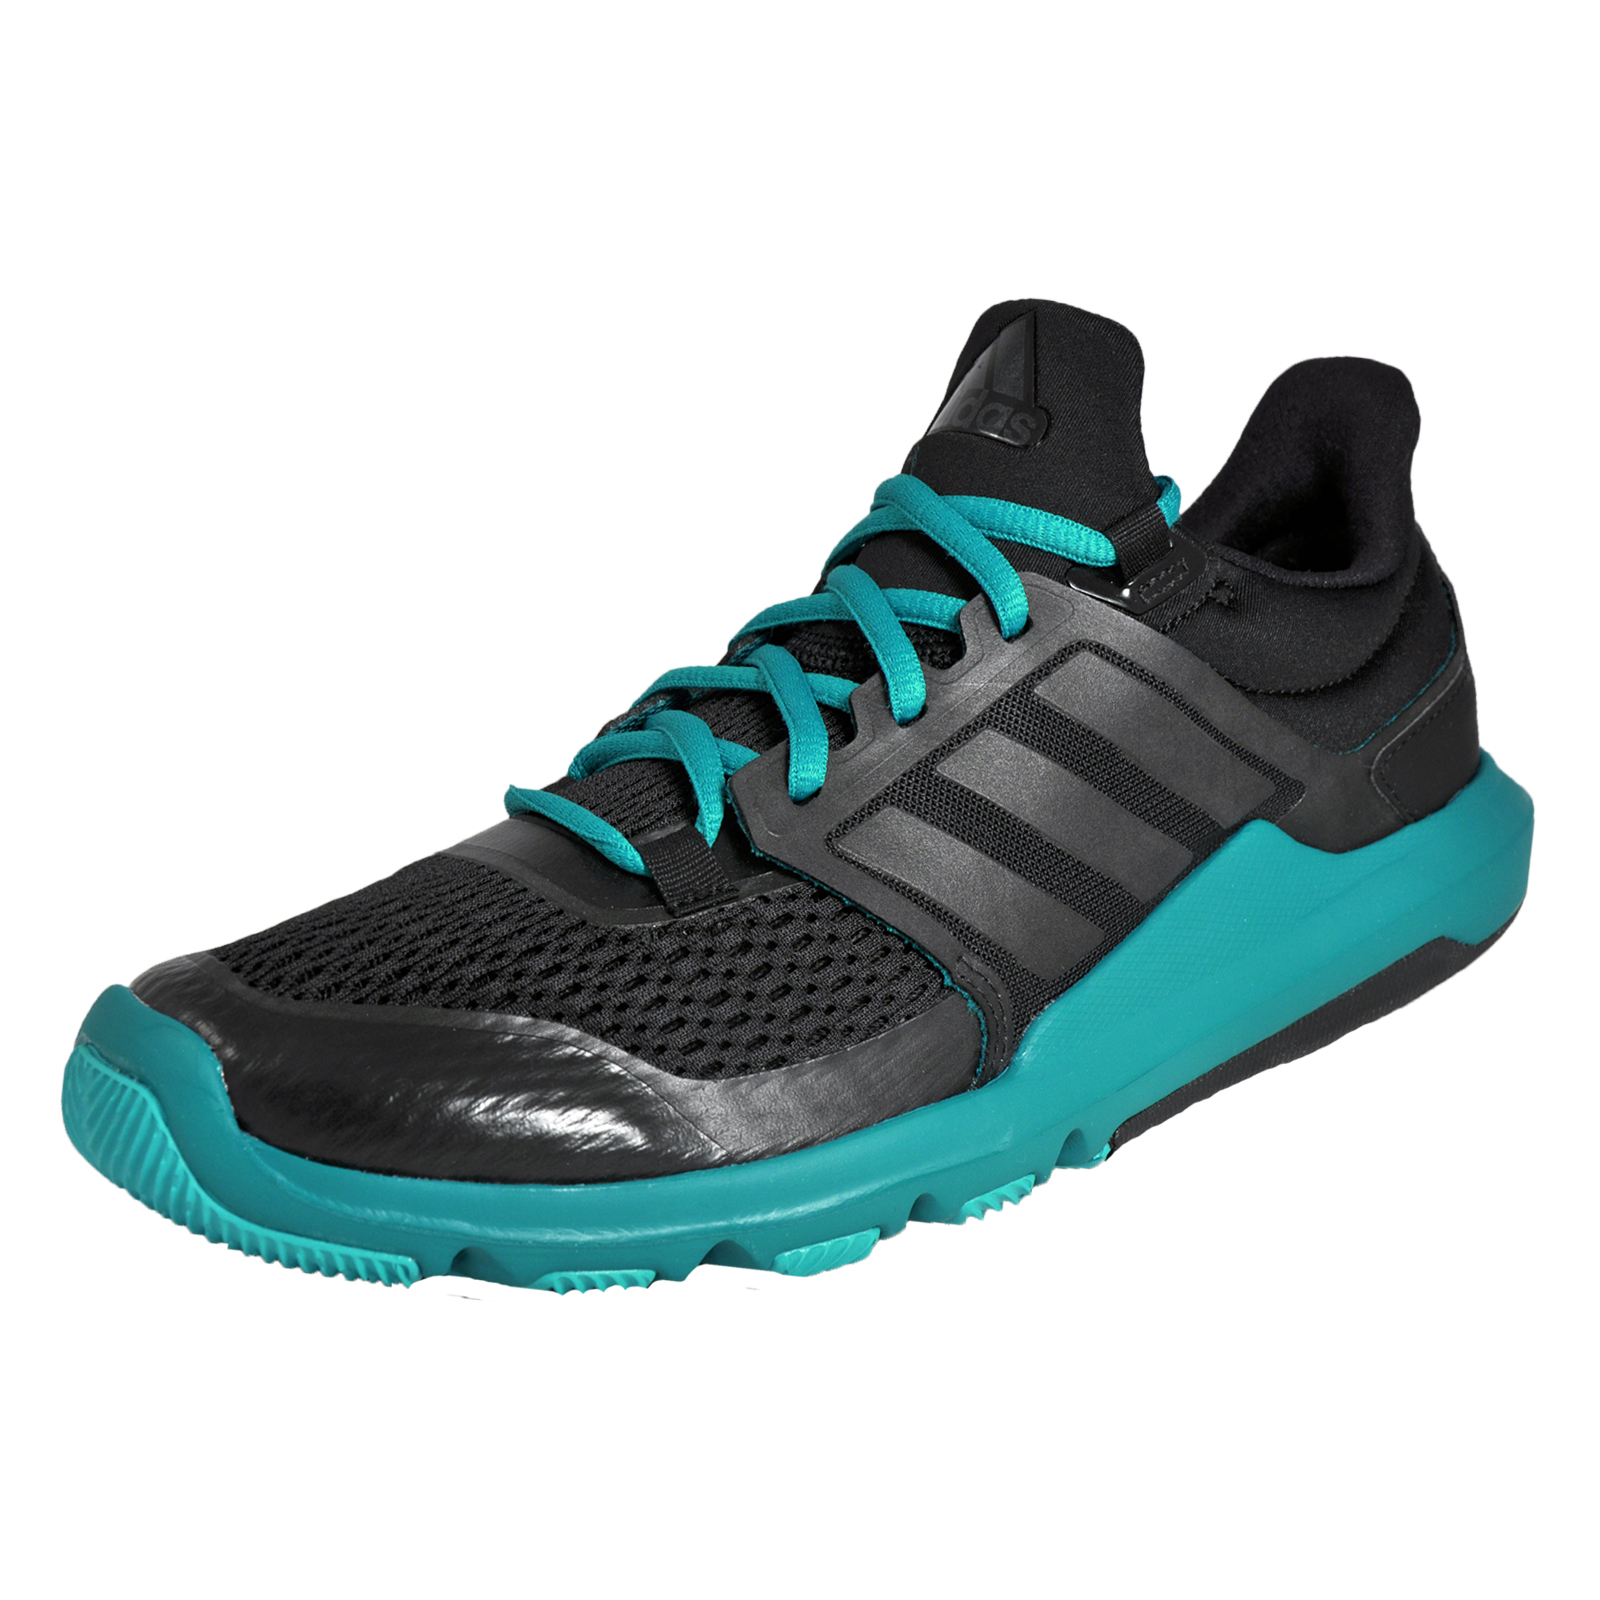 50f216c6fb71 Details about Adidas Adipure 360.3 Mens Running Shoes Fitness Gym Trainers  Black